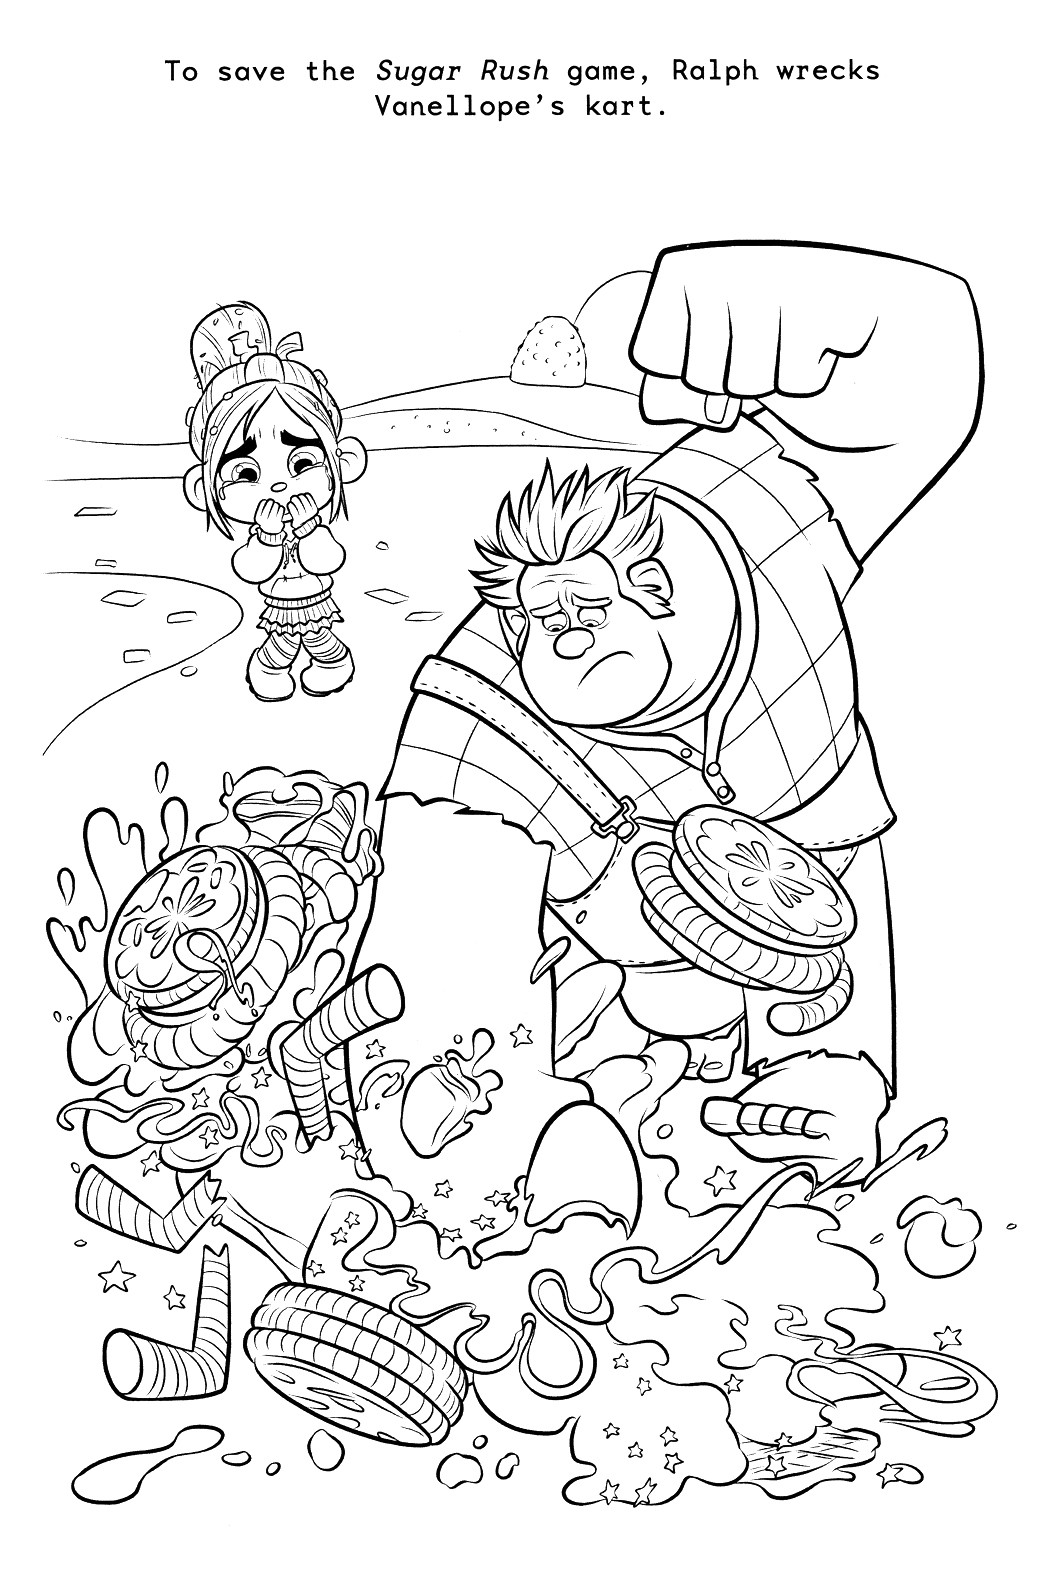 Ralph Breaks The Internet Coloring Pages  Wreck it Ralph Coloring Pages Best Coloring Pages For Kids